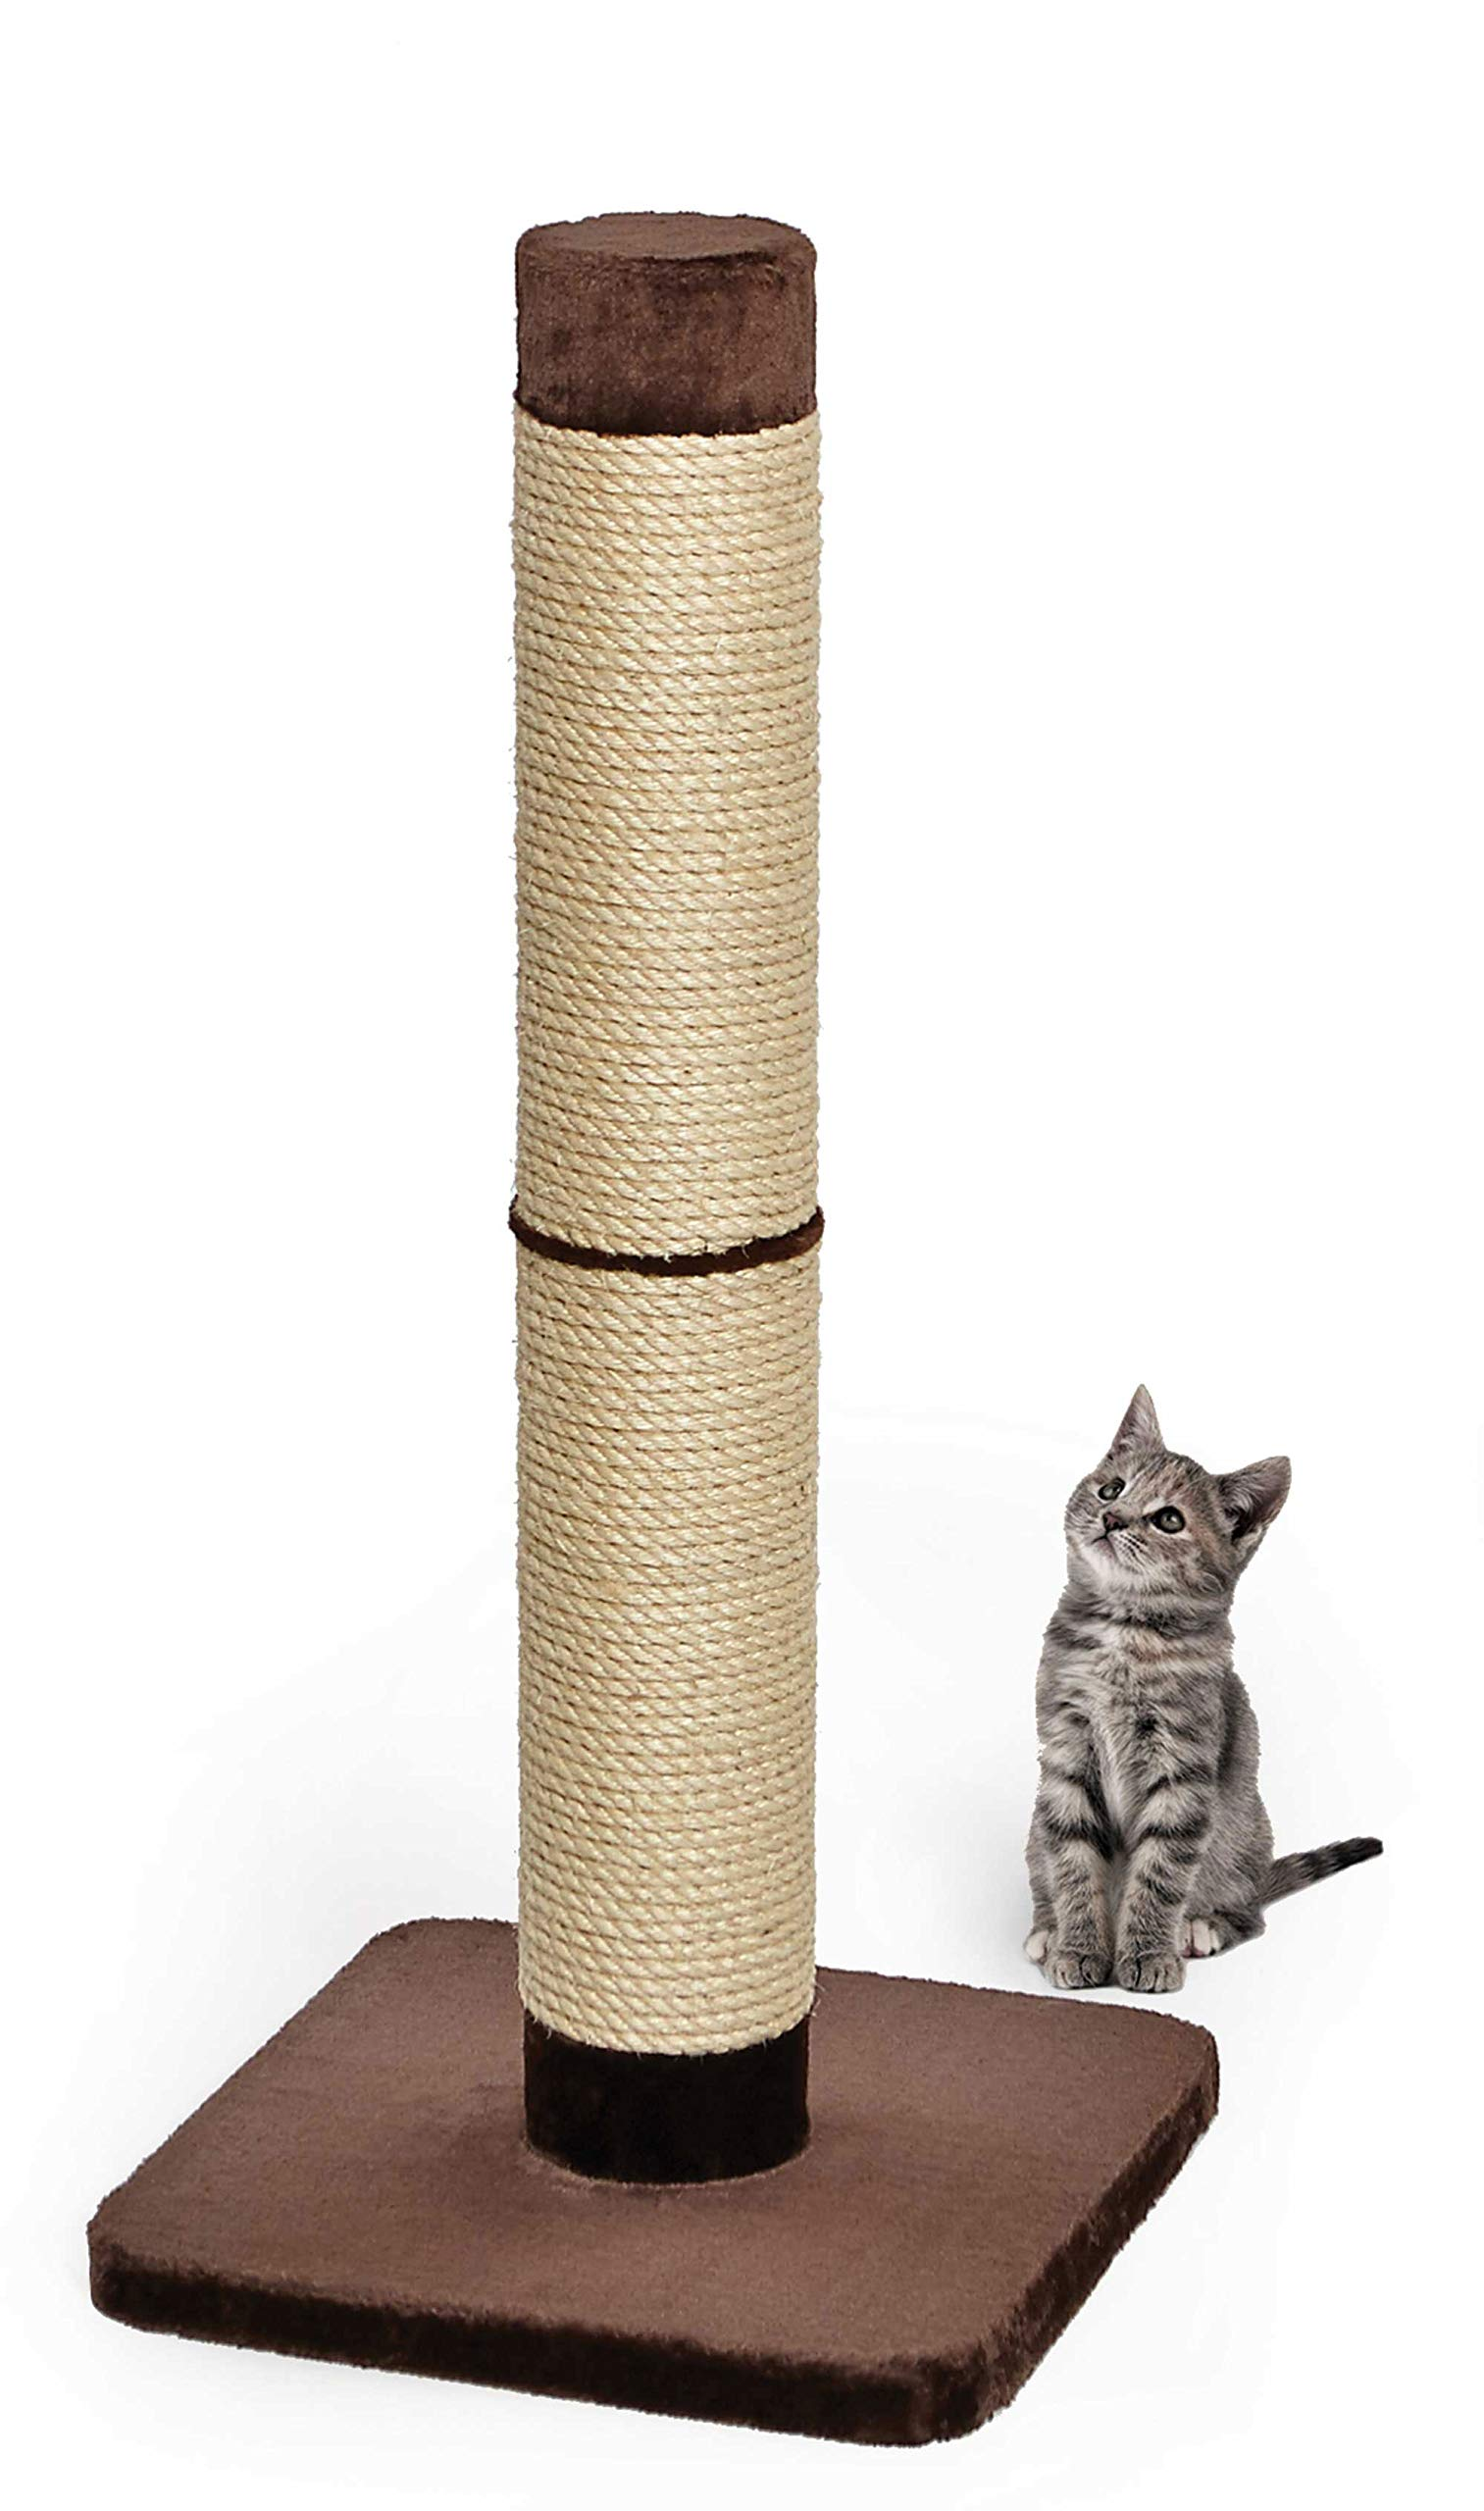 MidWest Homes for Pets Cat Scratching Post   Forte Huge Cat Scratching Post w/Extra-Durable Sisal Wrap, Brown & Tan, Giant XXL Cat Post by MidWest Homes for Pets